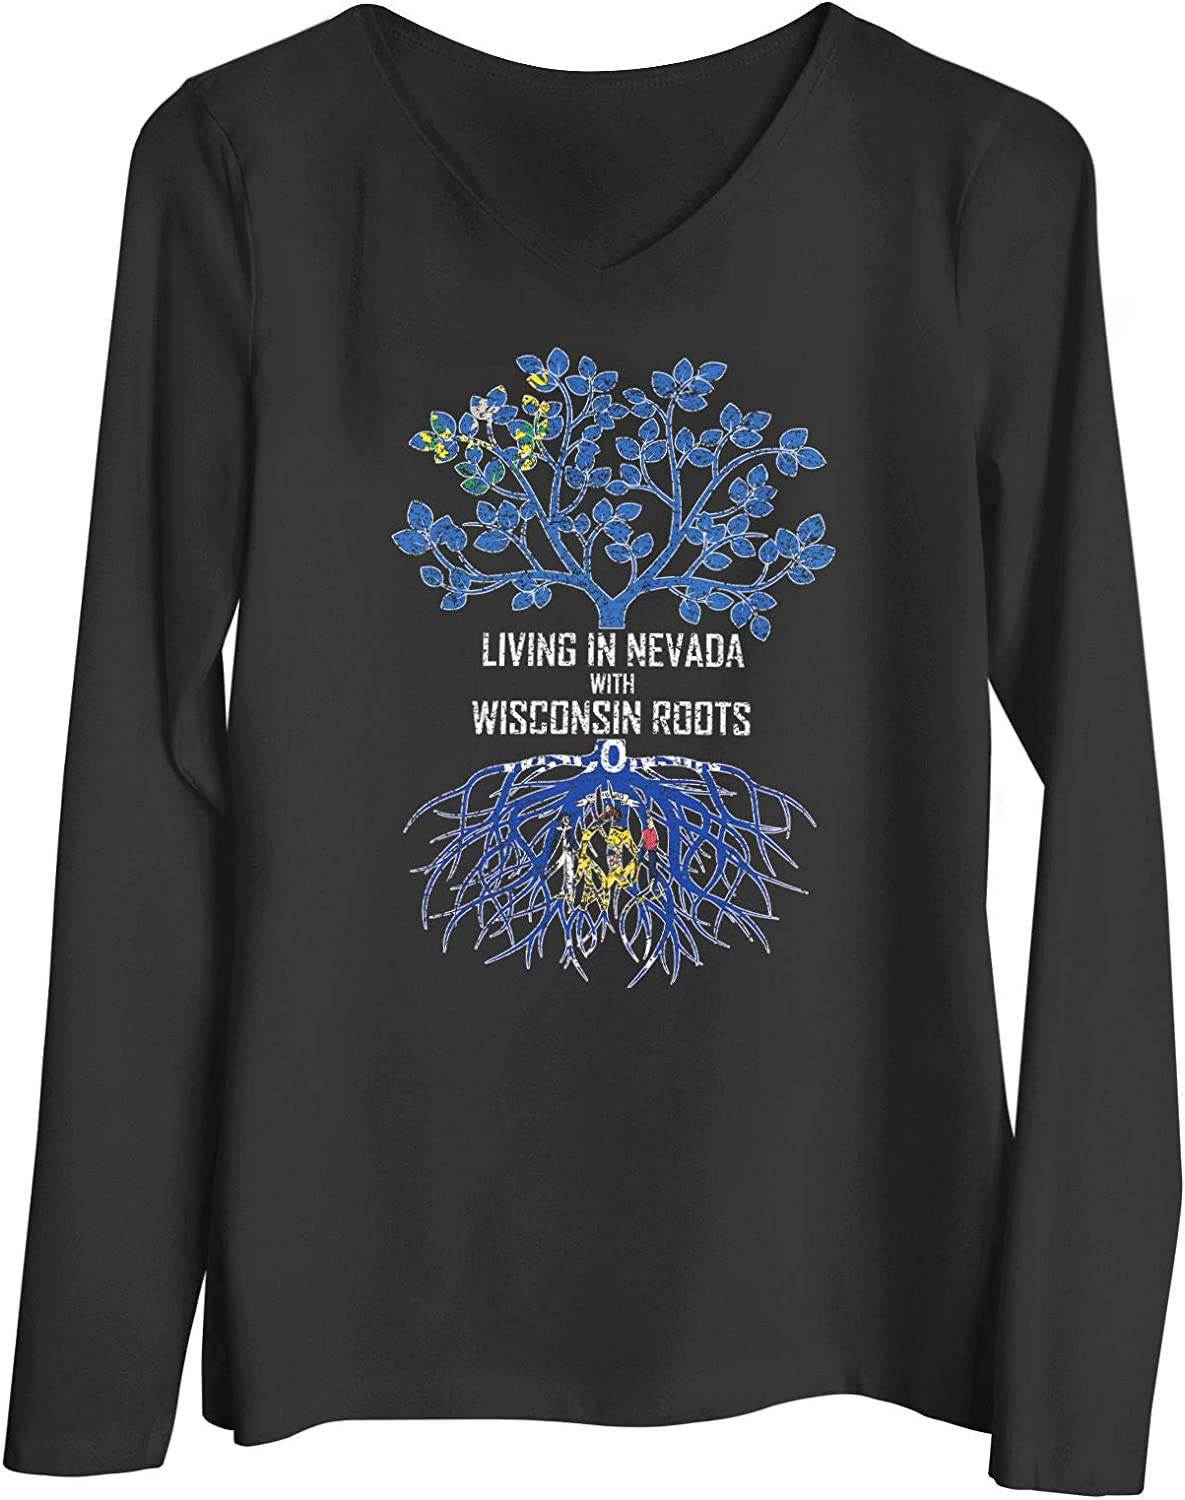 HARD EDGE DESIGN Women's Living in Nevada with Wisconsin Roots T-Shirt